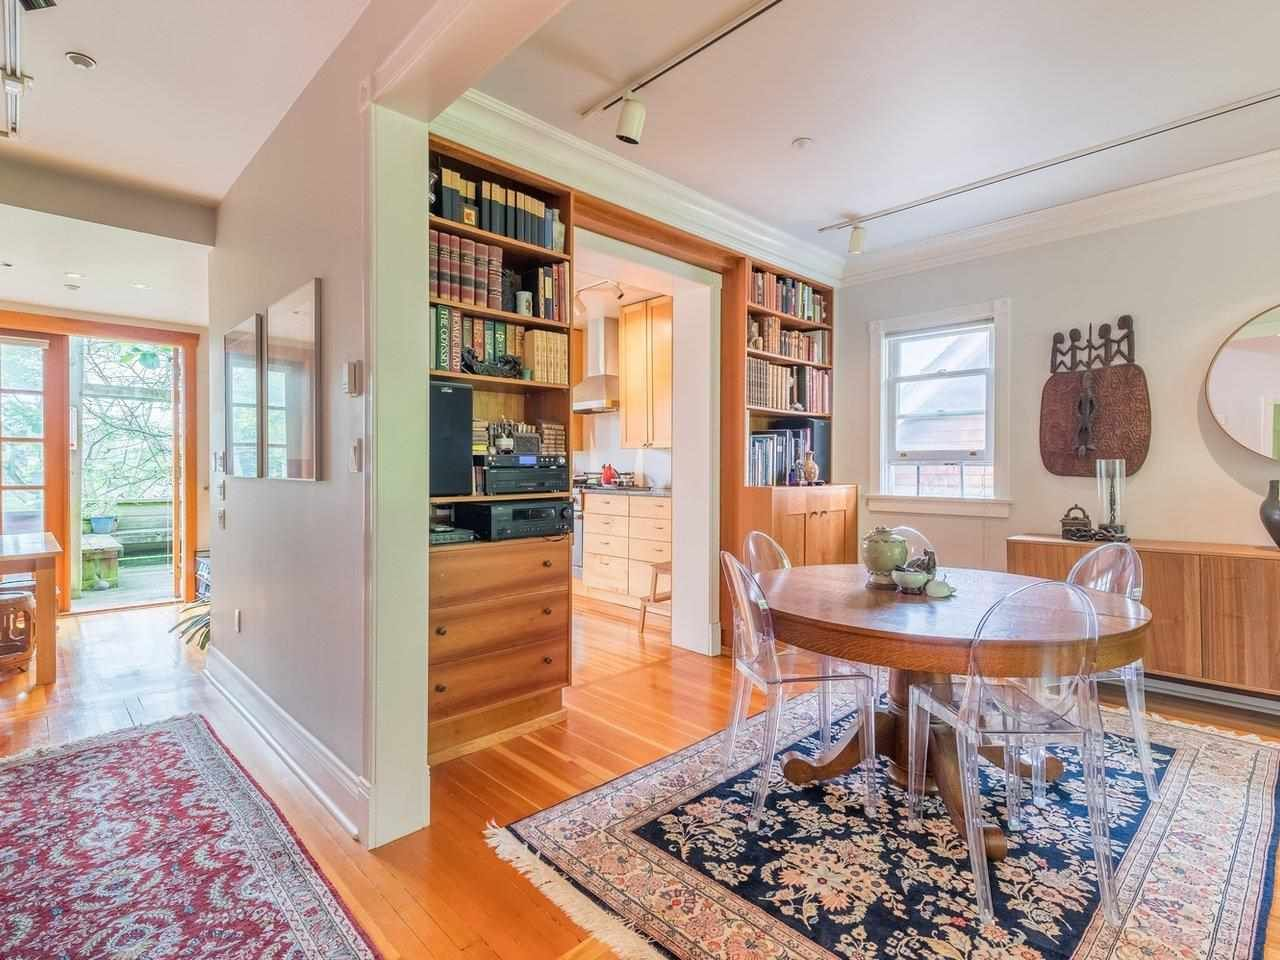 Photo 4: Photos: 2556 W 2ND Avenue in Vancouver: Kitsilano House for sale (Vancouver West)  : MLS®# R2593228